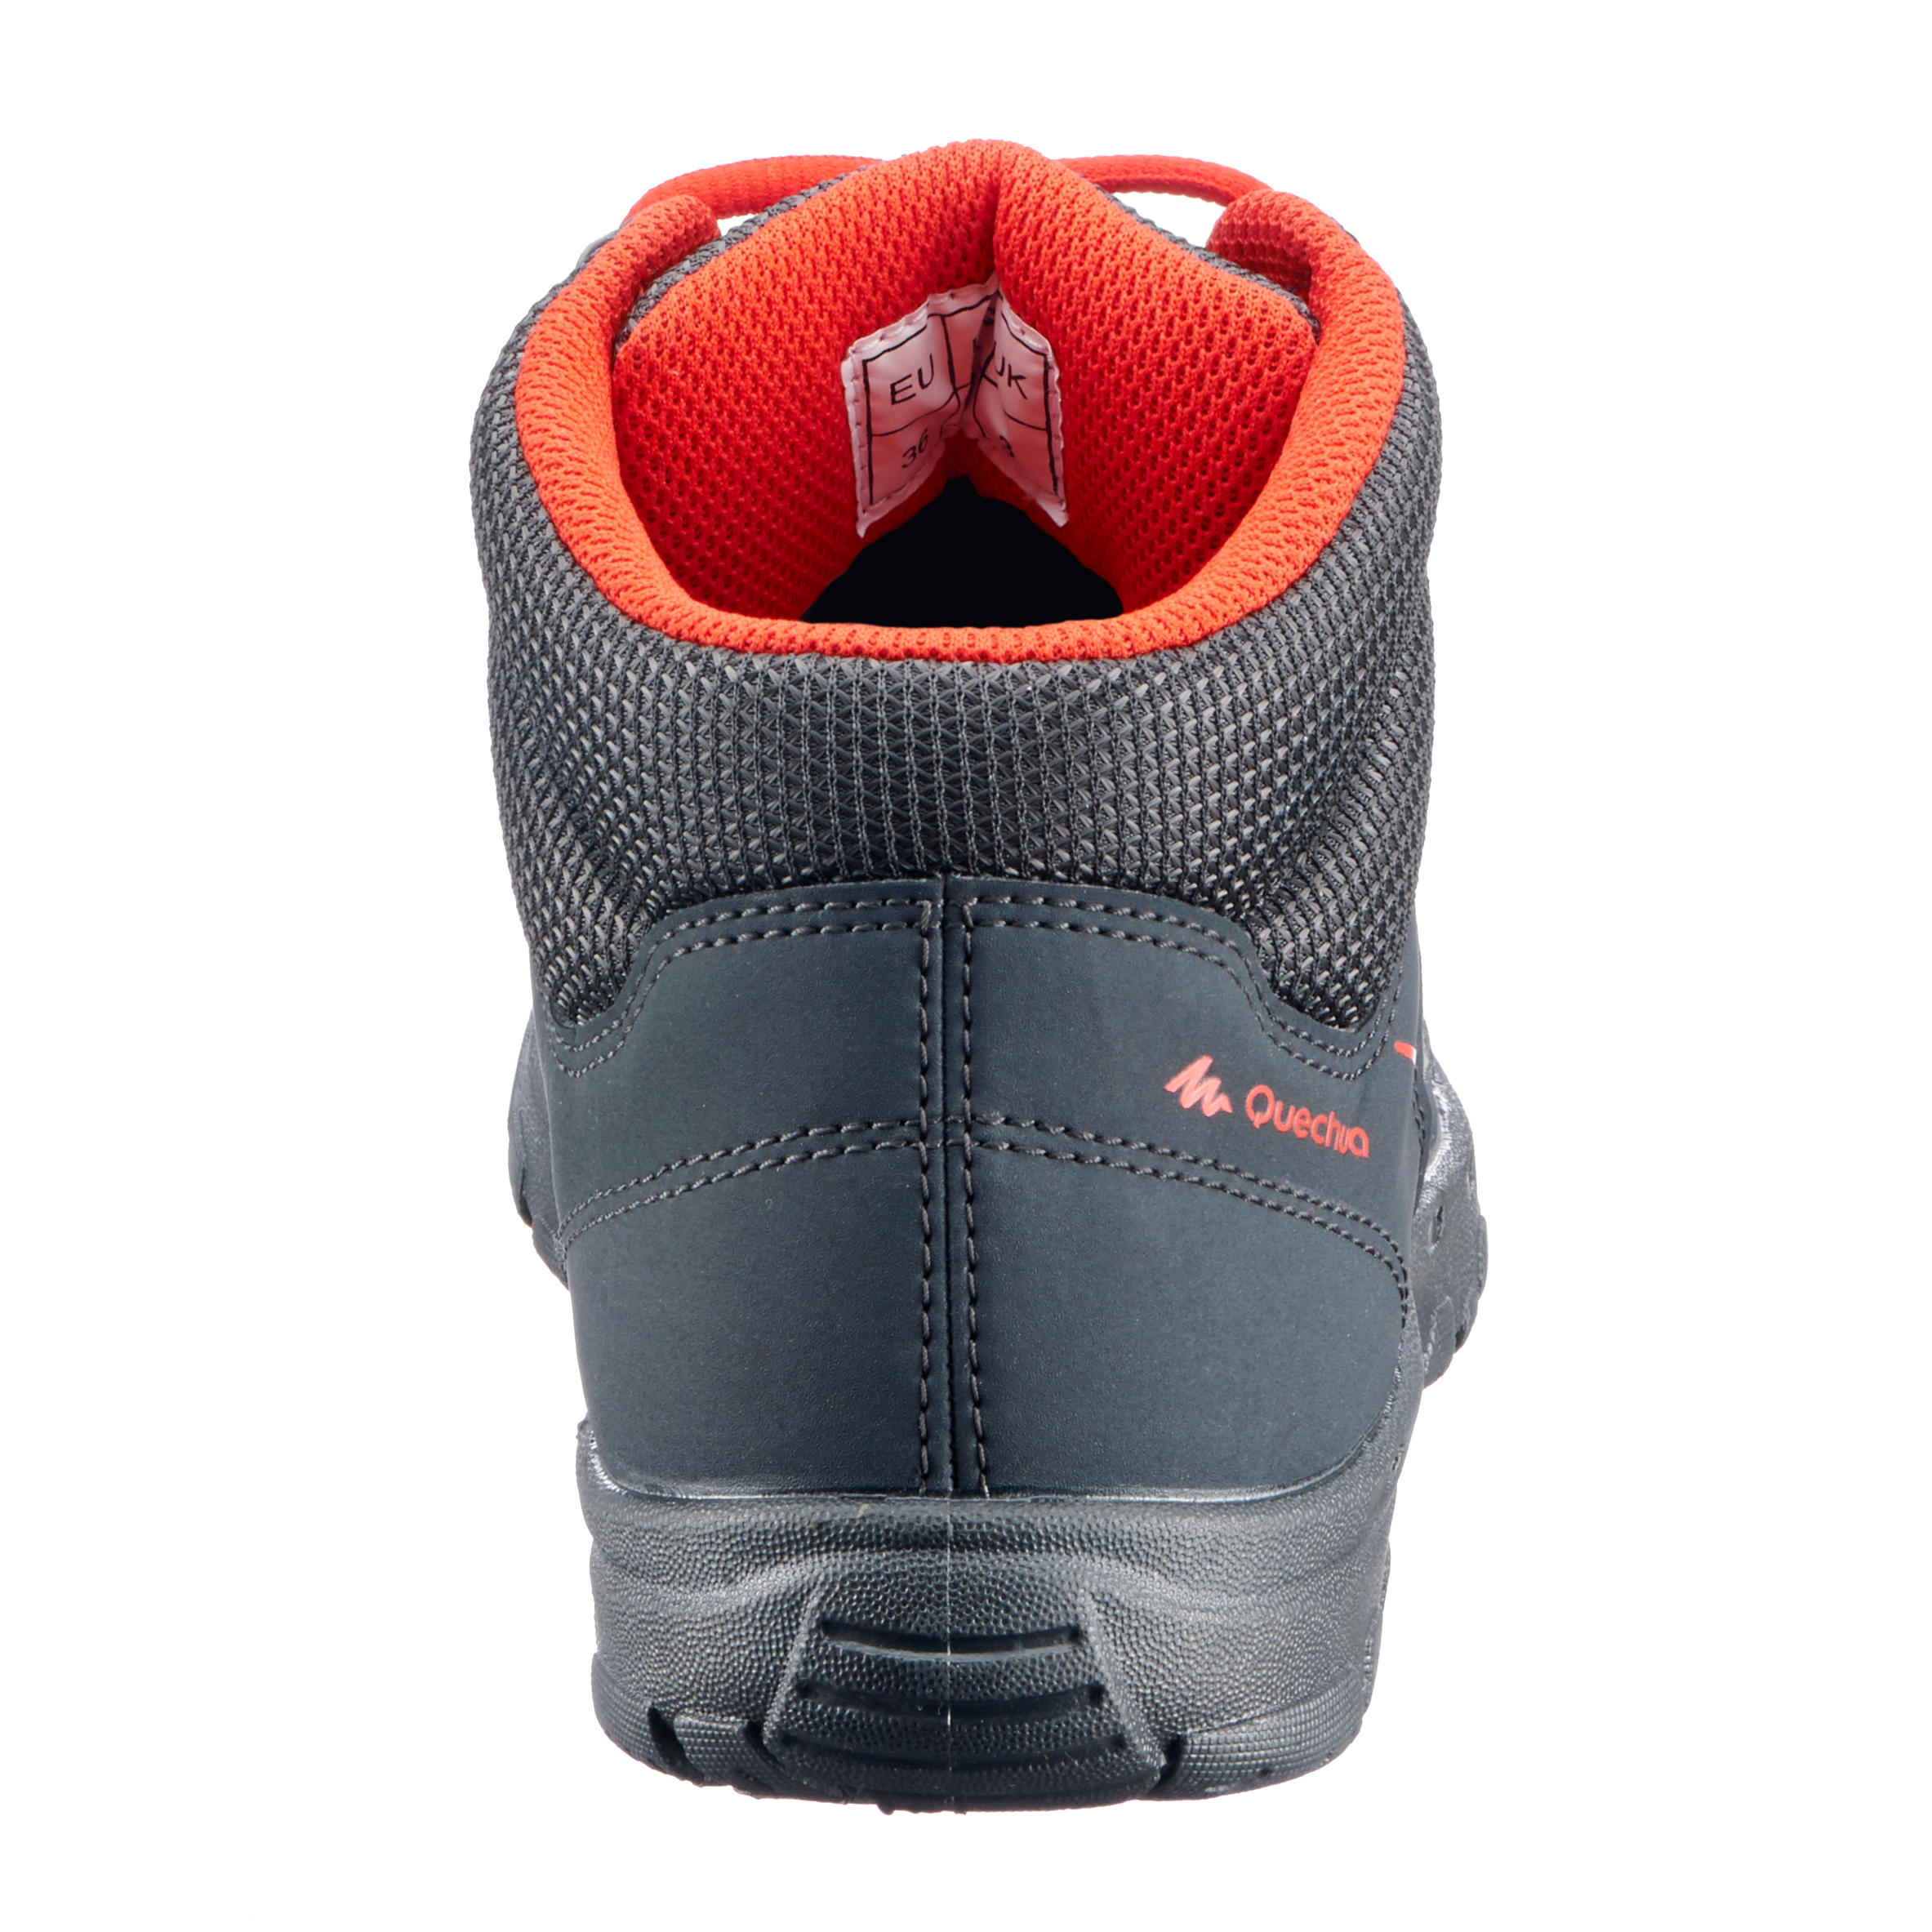 MH100 Mid Kids' Hiking Shoes - Black/Red, from size 2.5 to 5